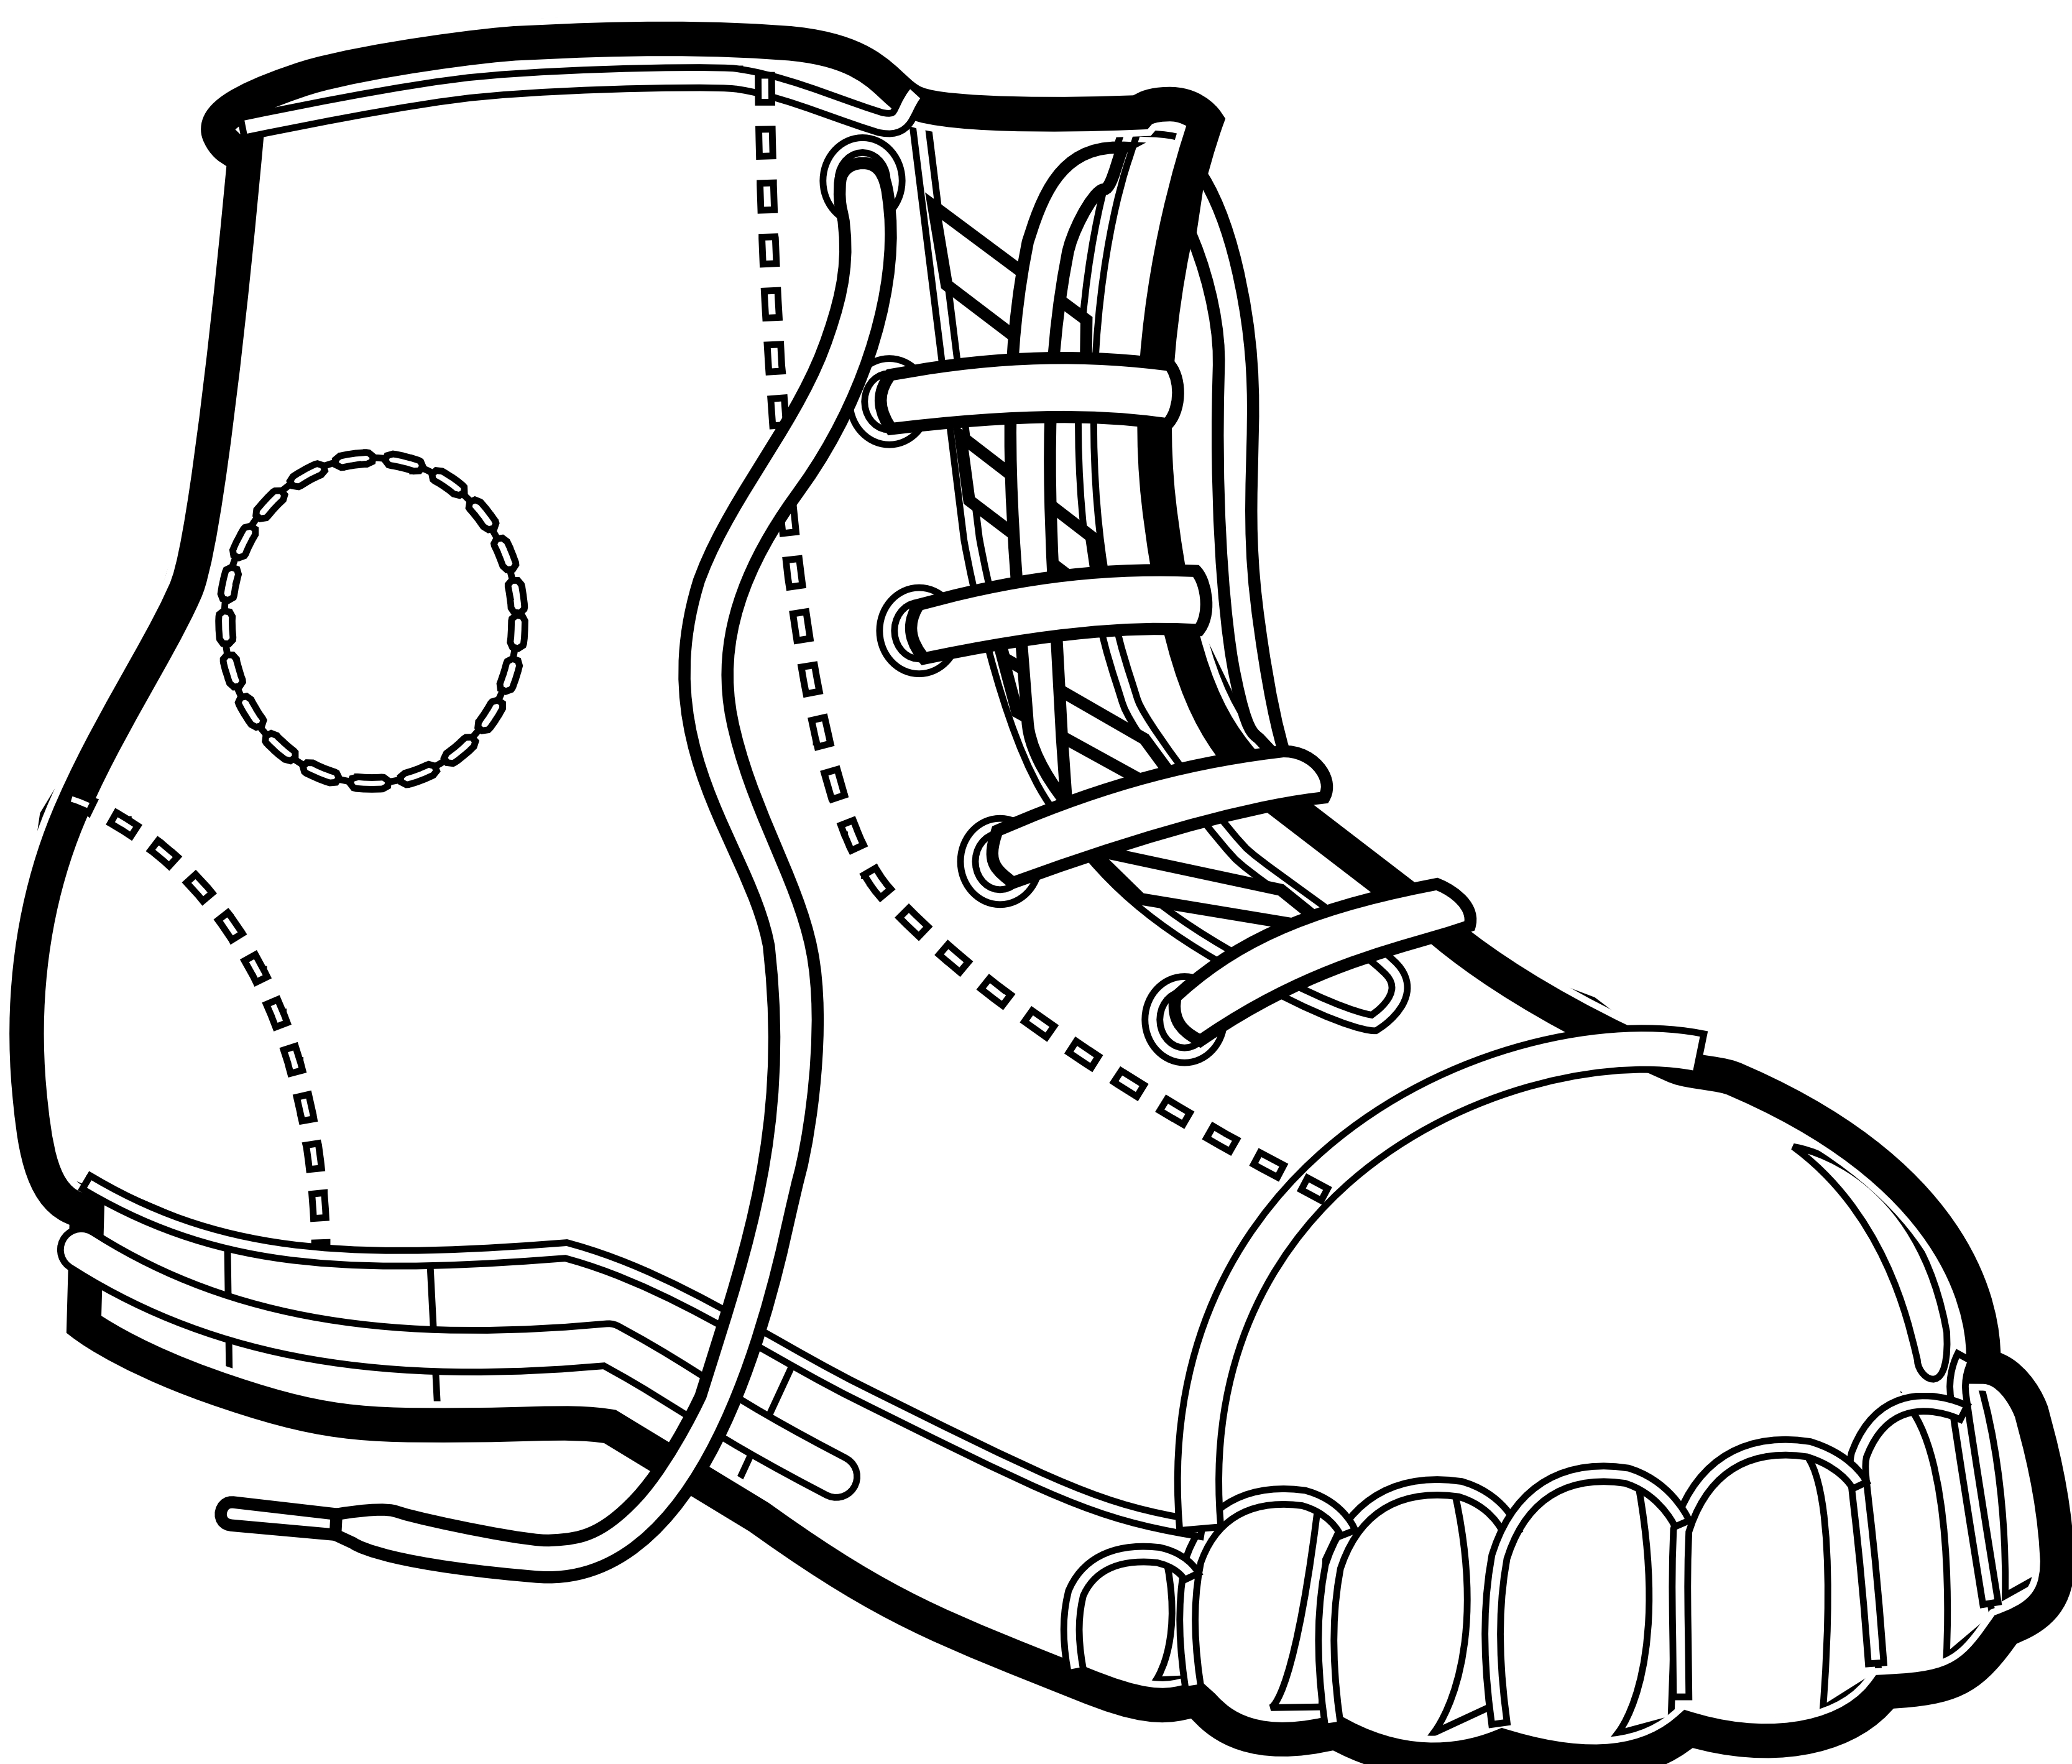 Boots svg spur drawing. Doll clipart black and